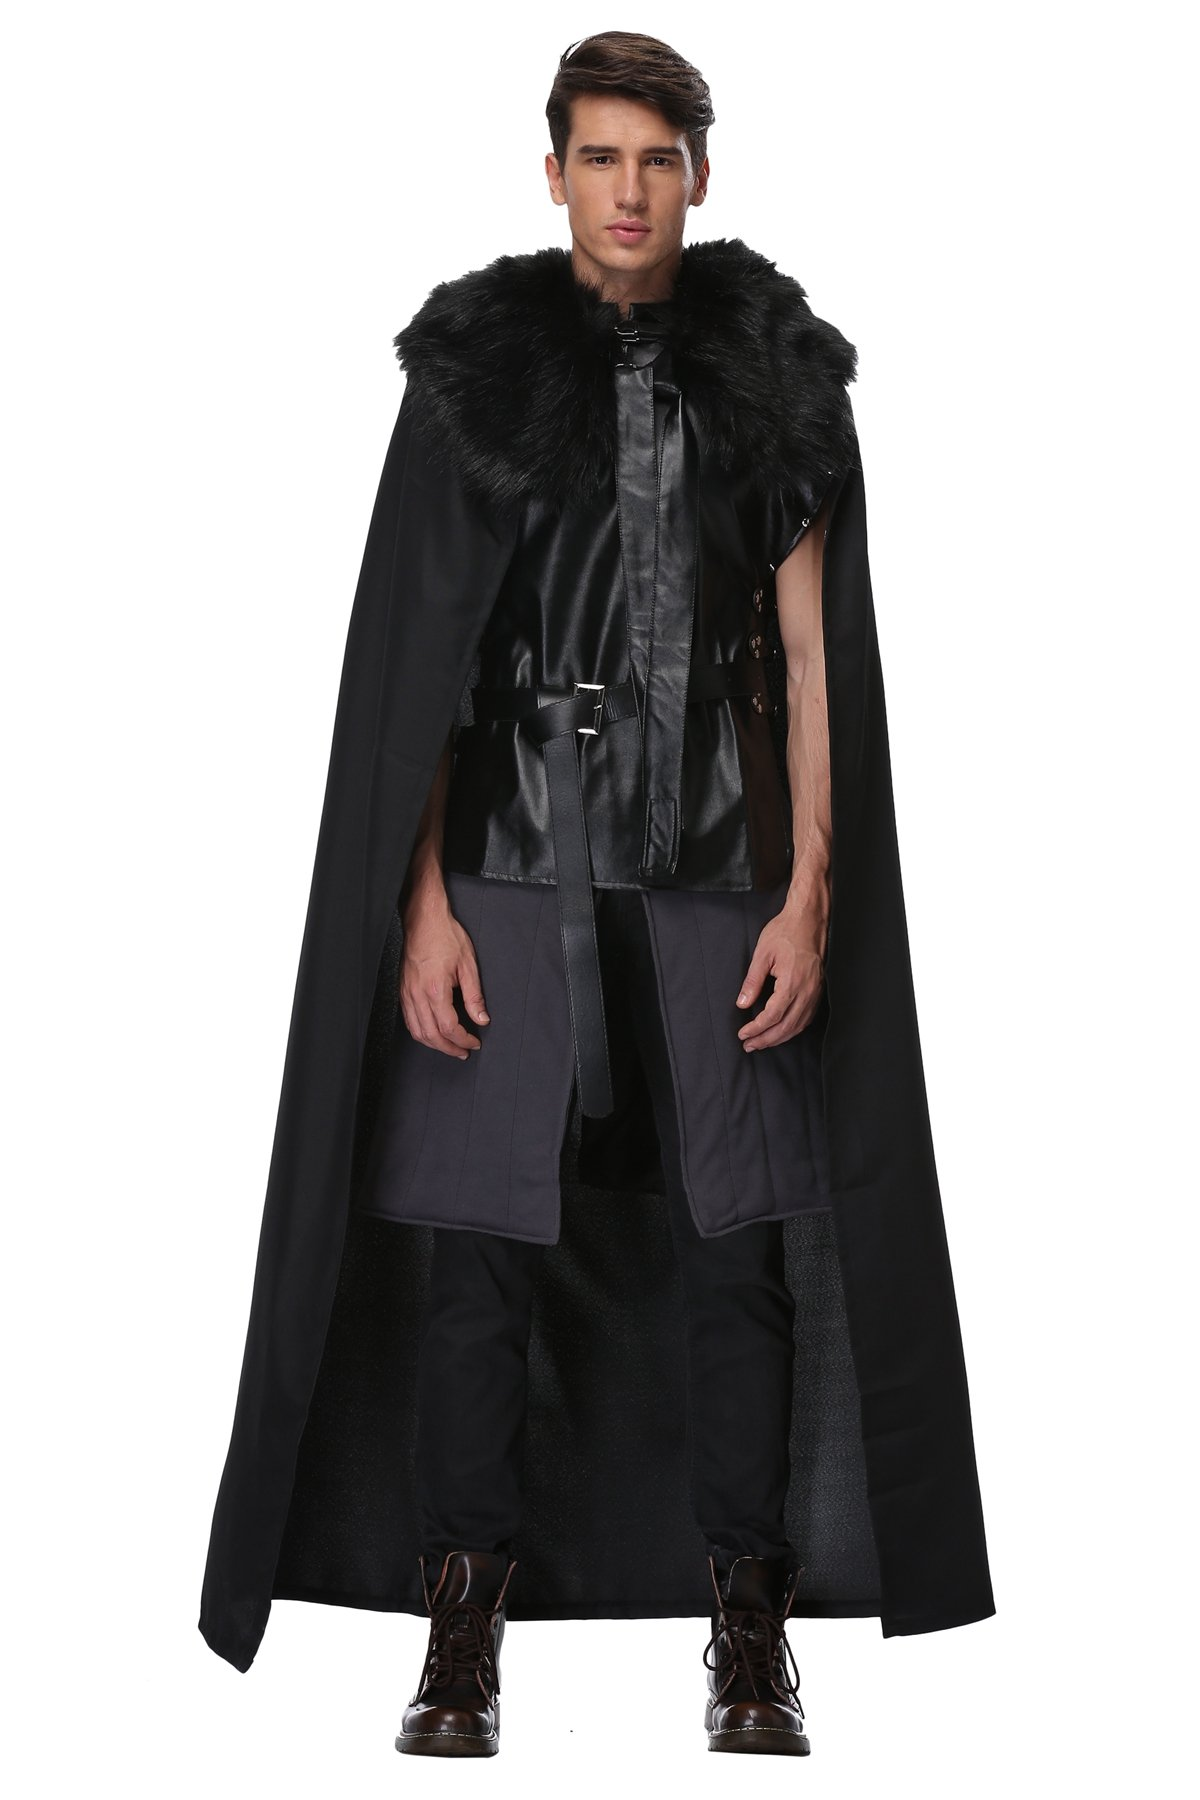 Knights Watch Cosplay Halloween Party Costume for Men Adult Full Outfit with Fur Cloak